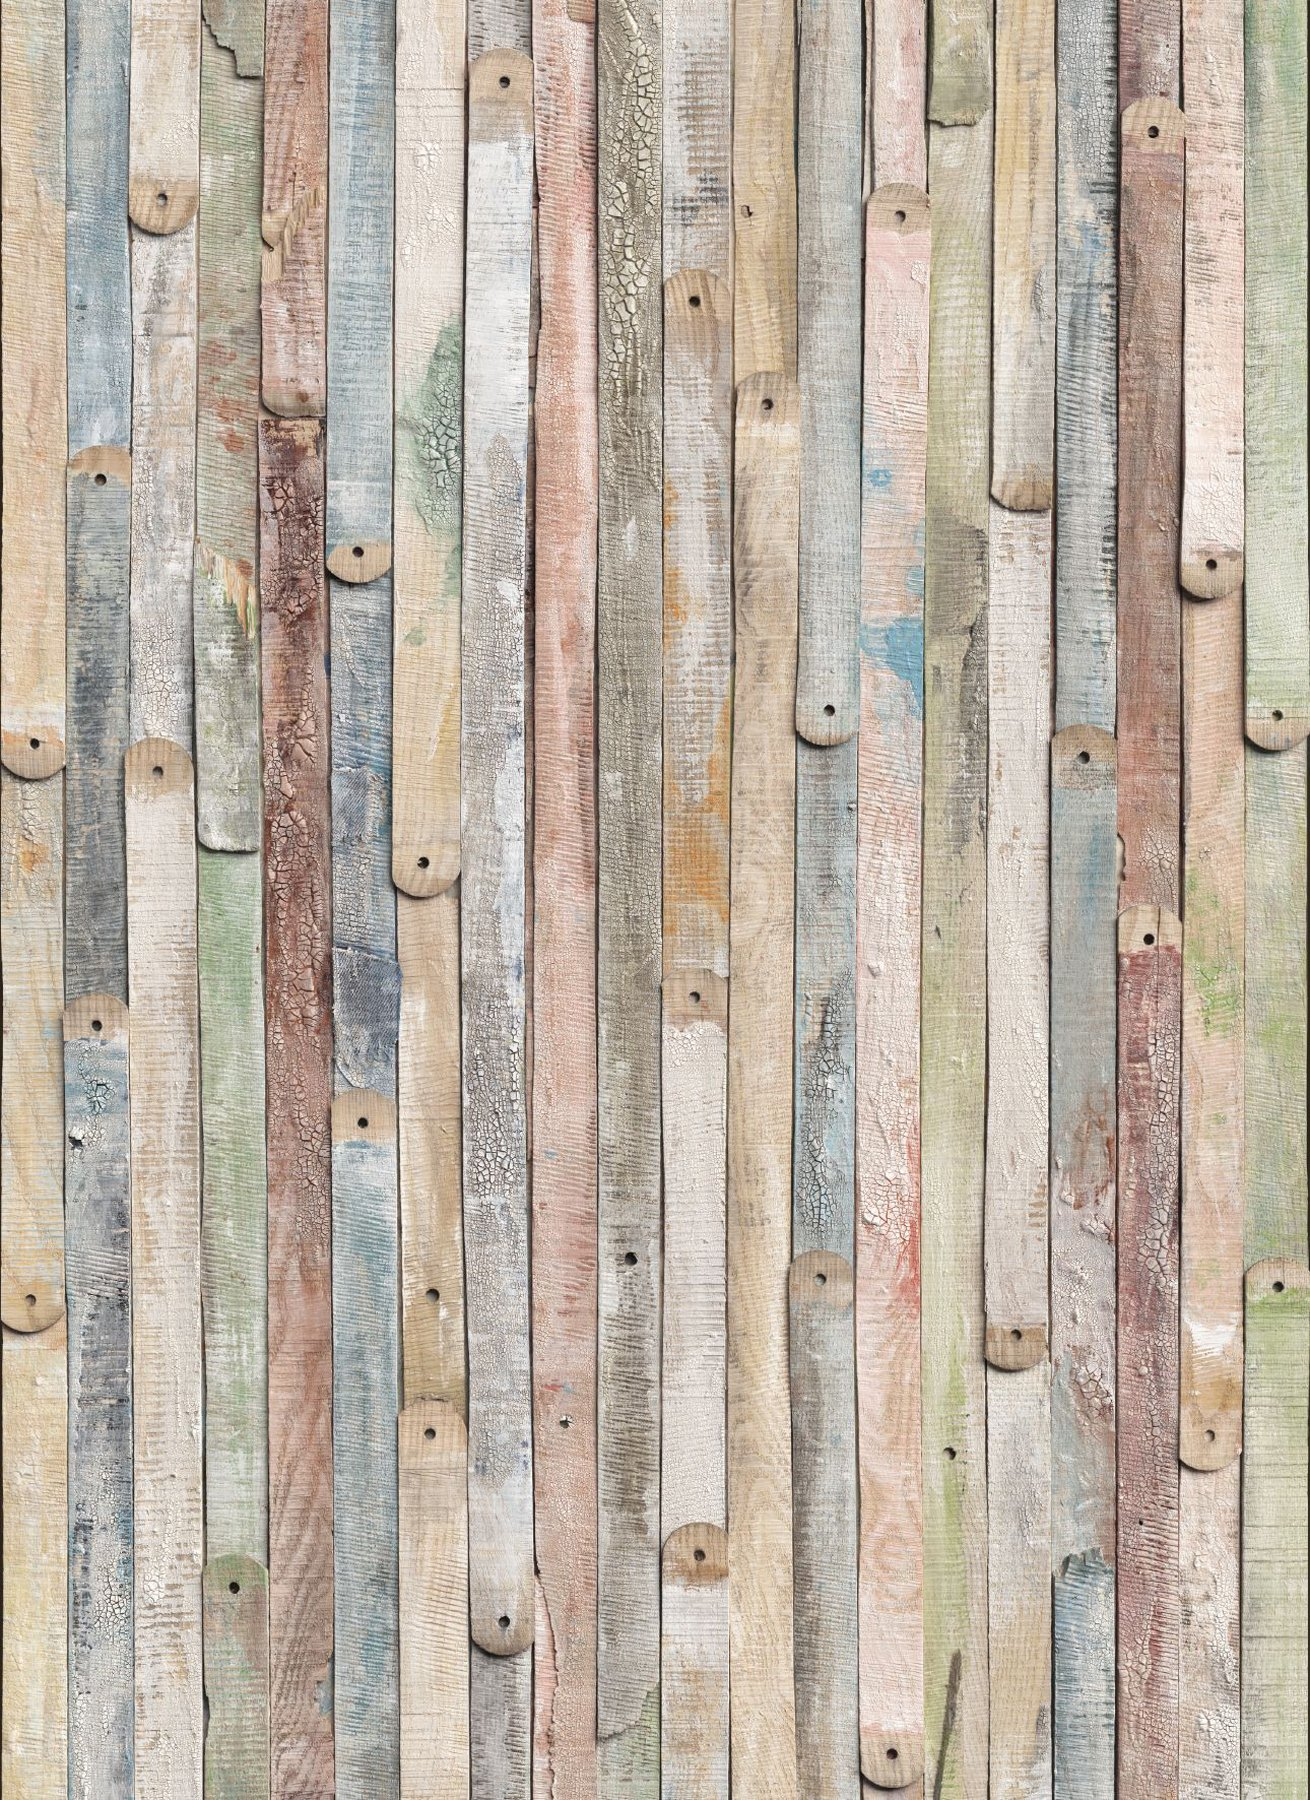 Komar 4-910 Vintage Wood 4-Panel Wall Mural by Komar (Image #2)